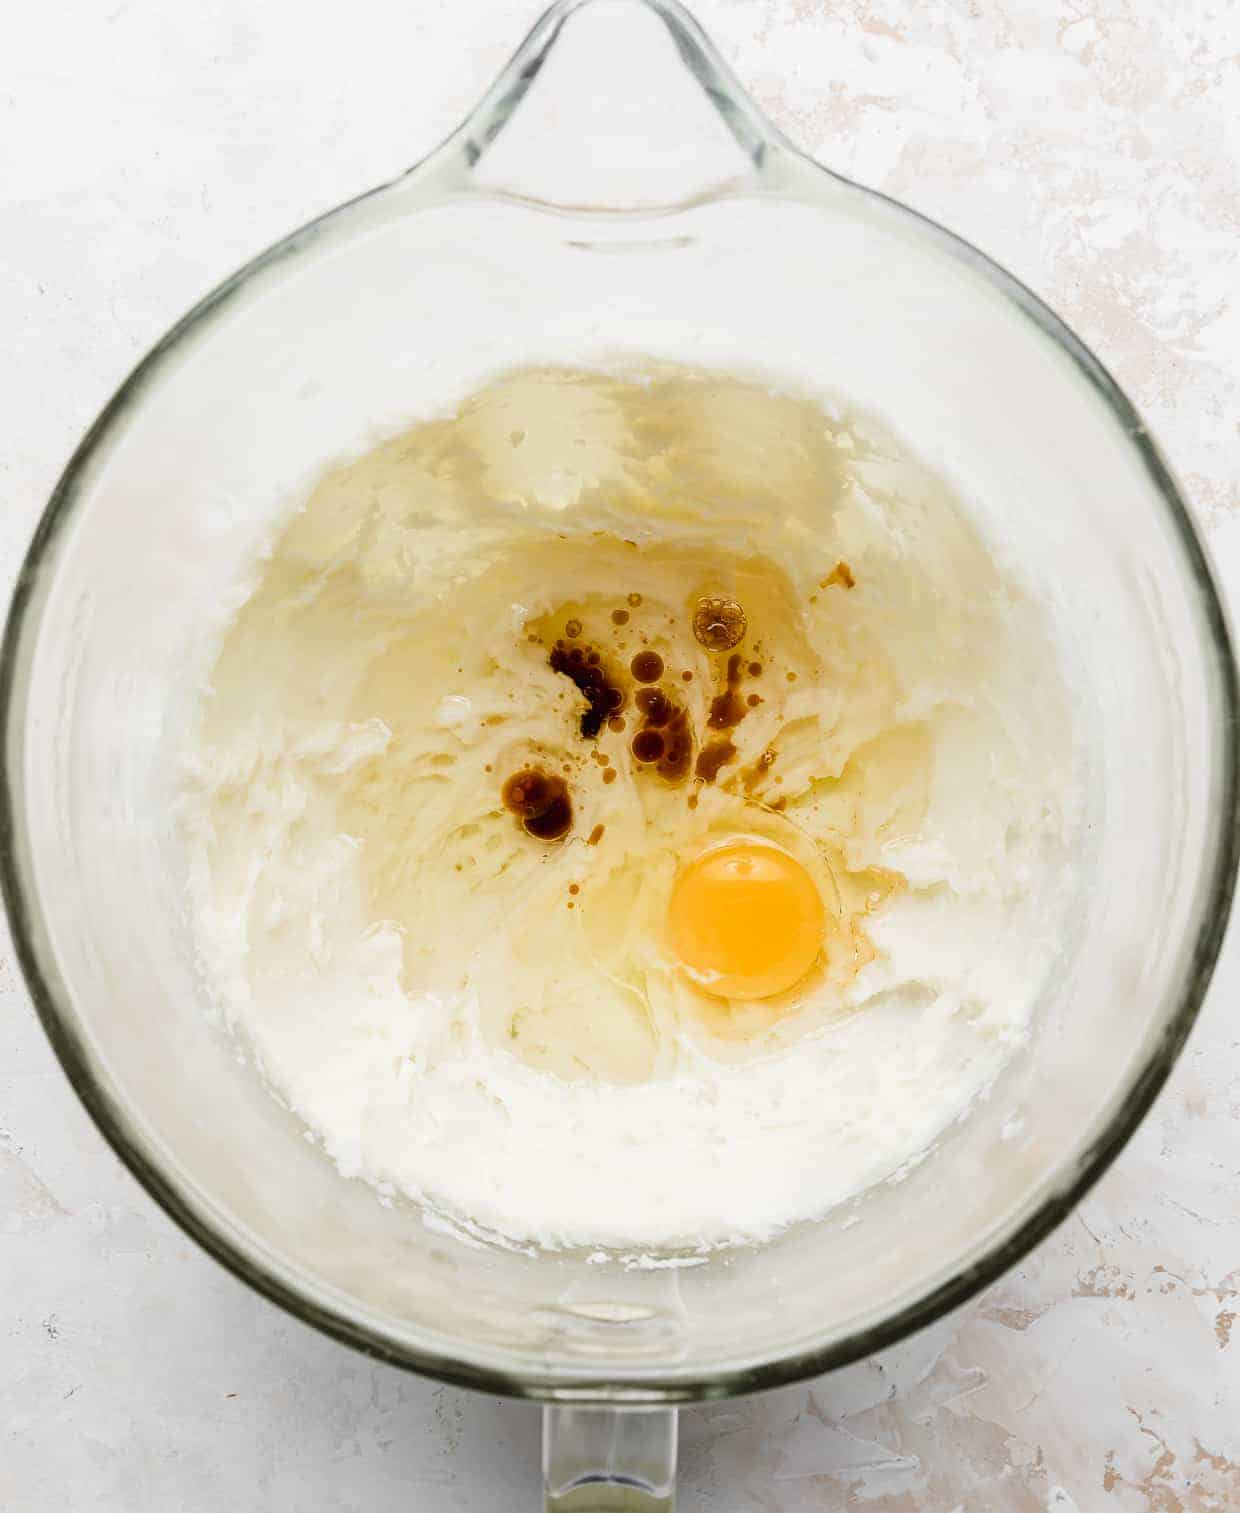 An egg, oil, and vanilla extract in the bowl of a stand mixer with creamed sugar and cream cheese.